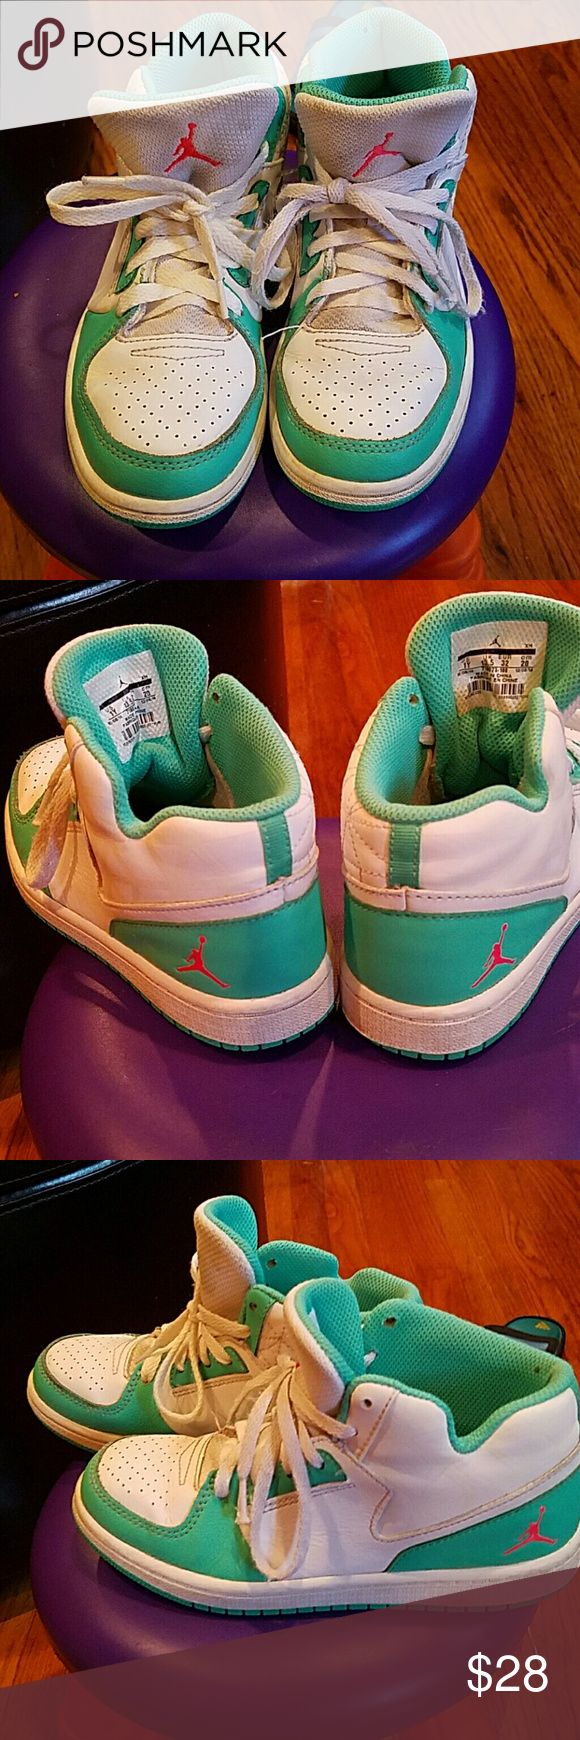 Jordan Girl sneakers Girls teal and white sneakers. Great condition! Make me an offer! Jordan Shoes Sneakers